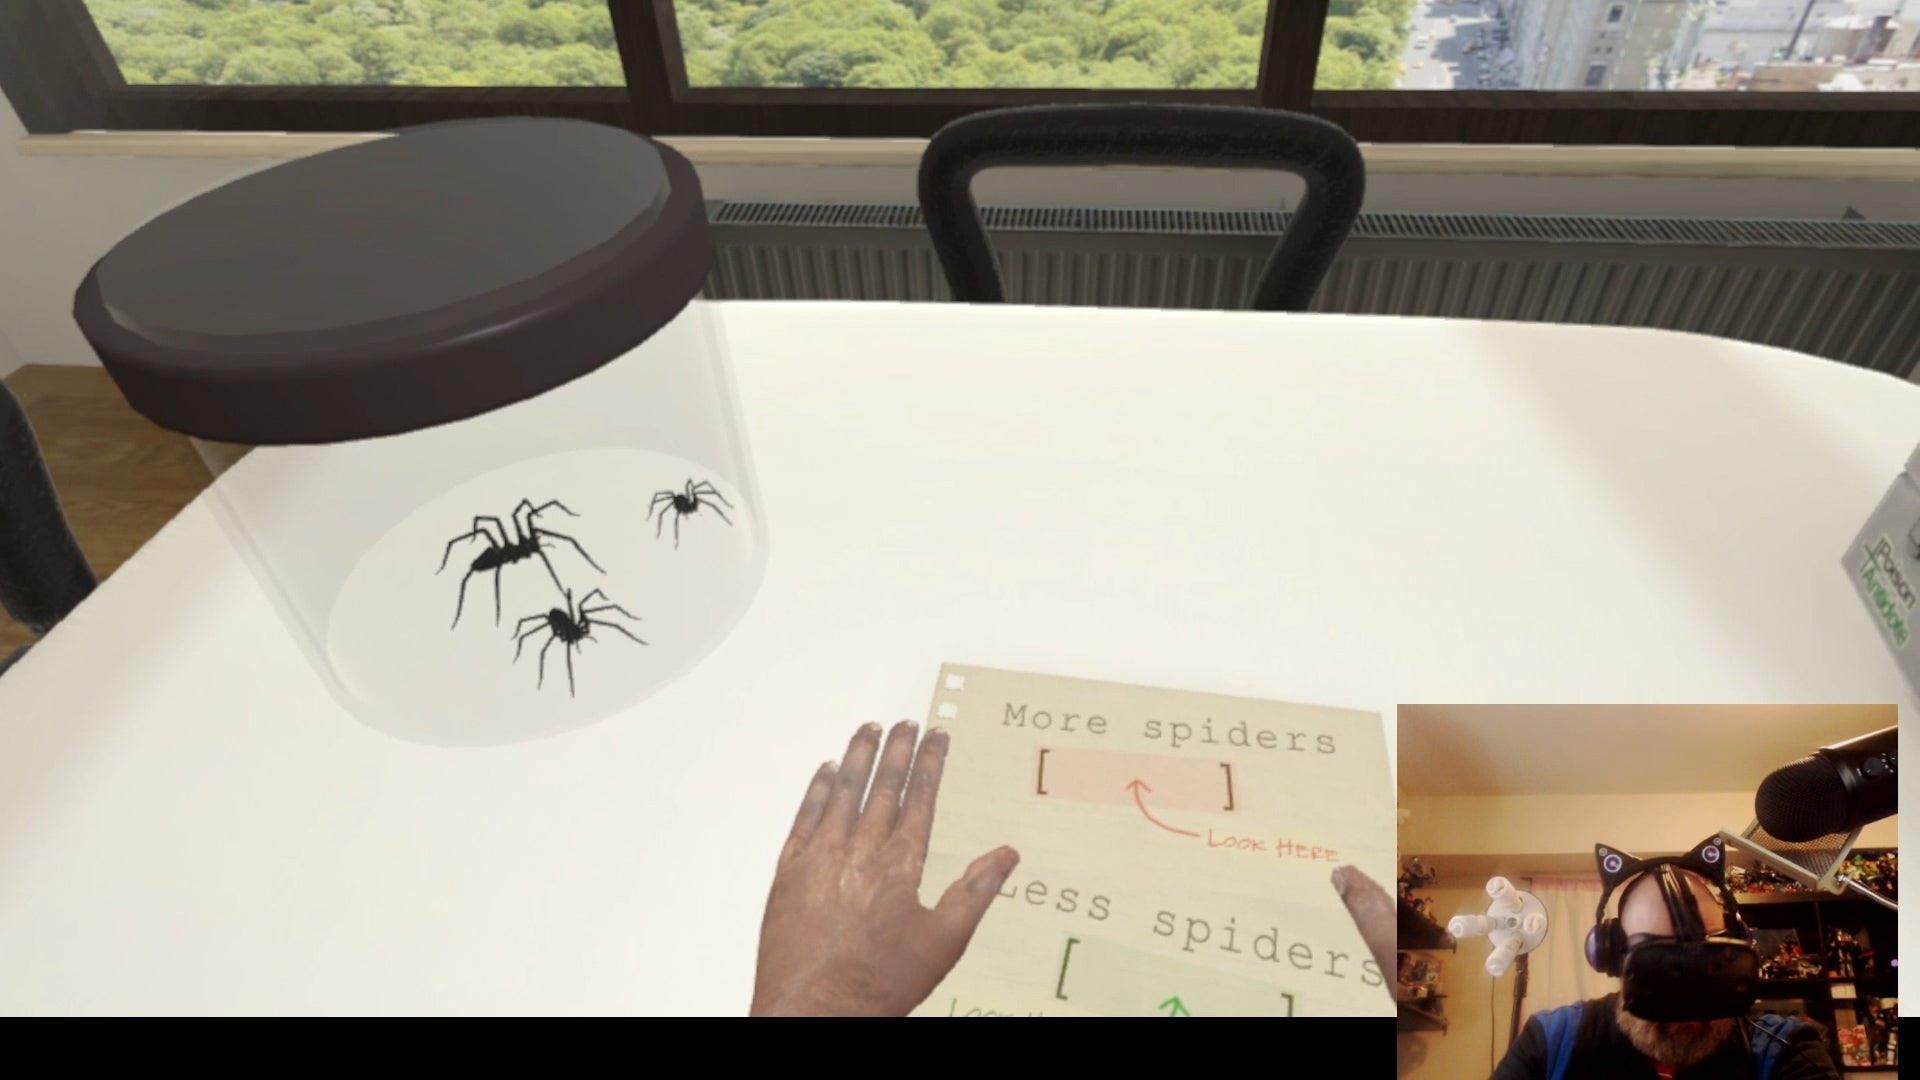 Virtual Reality Arachnophobia Therapy Is A Definite Nope